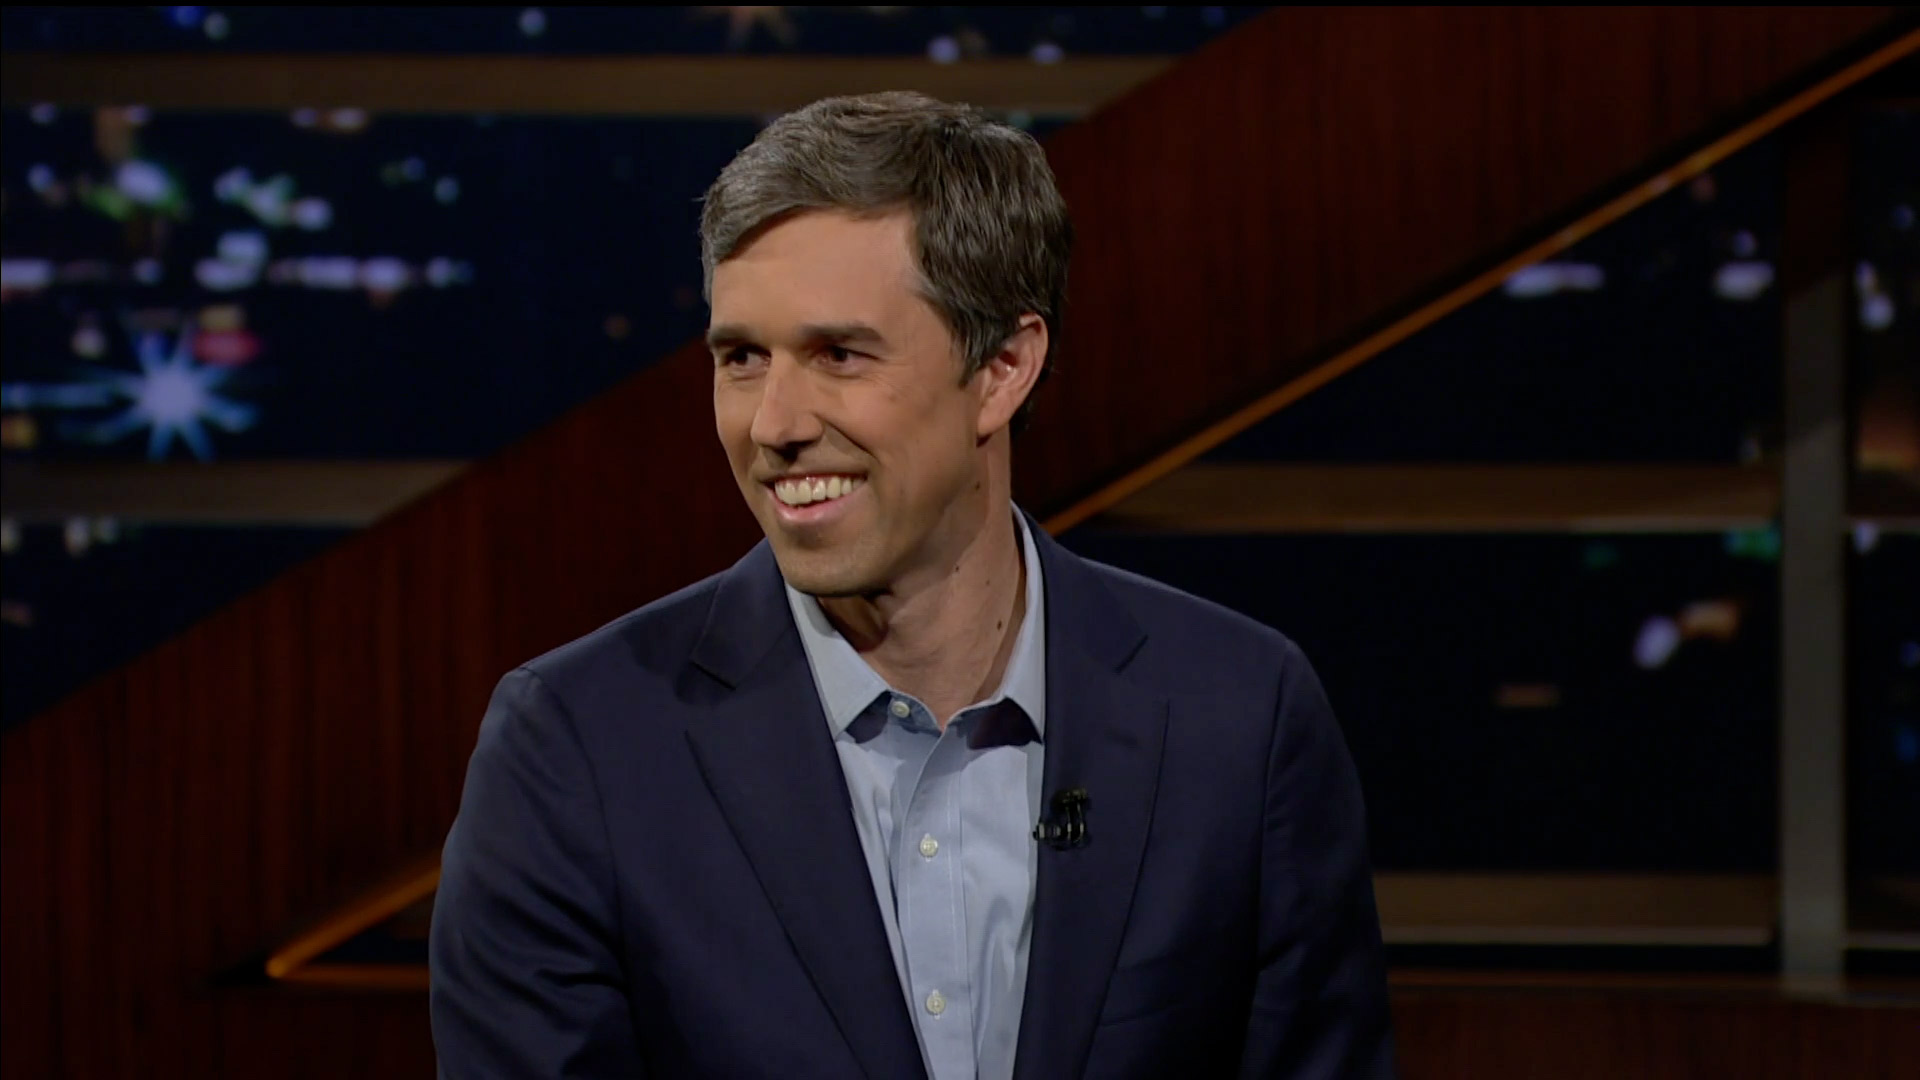 Beto O'Rourke says he doesn't accept PAC donations ...